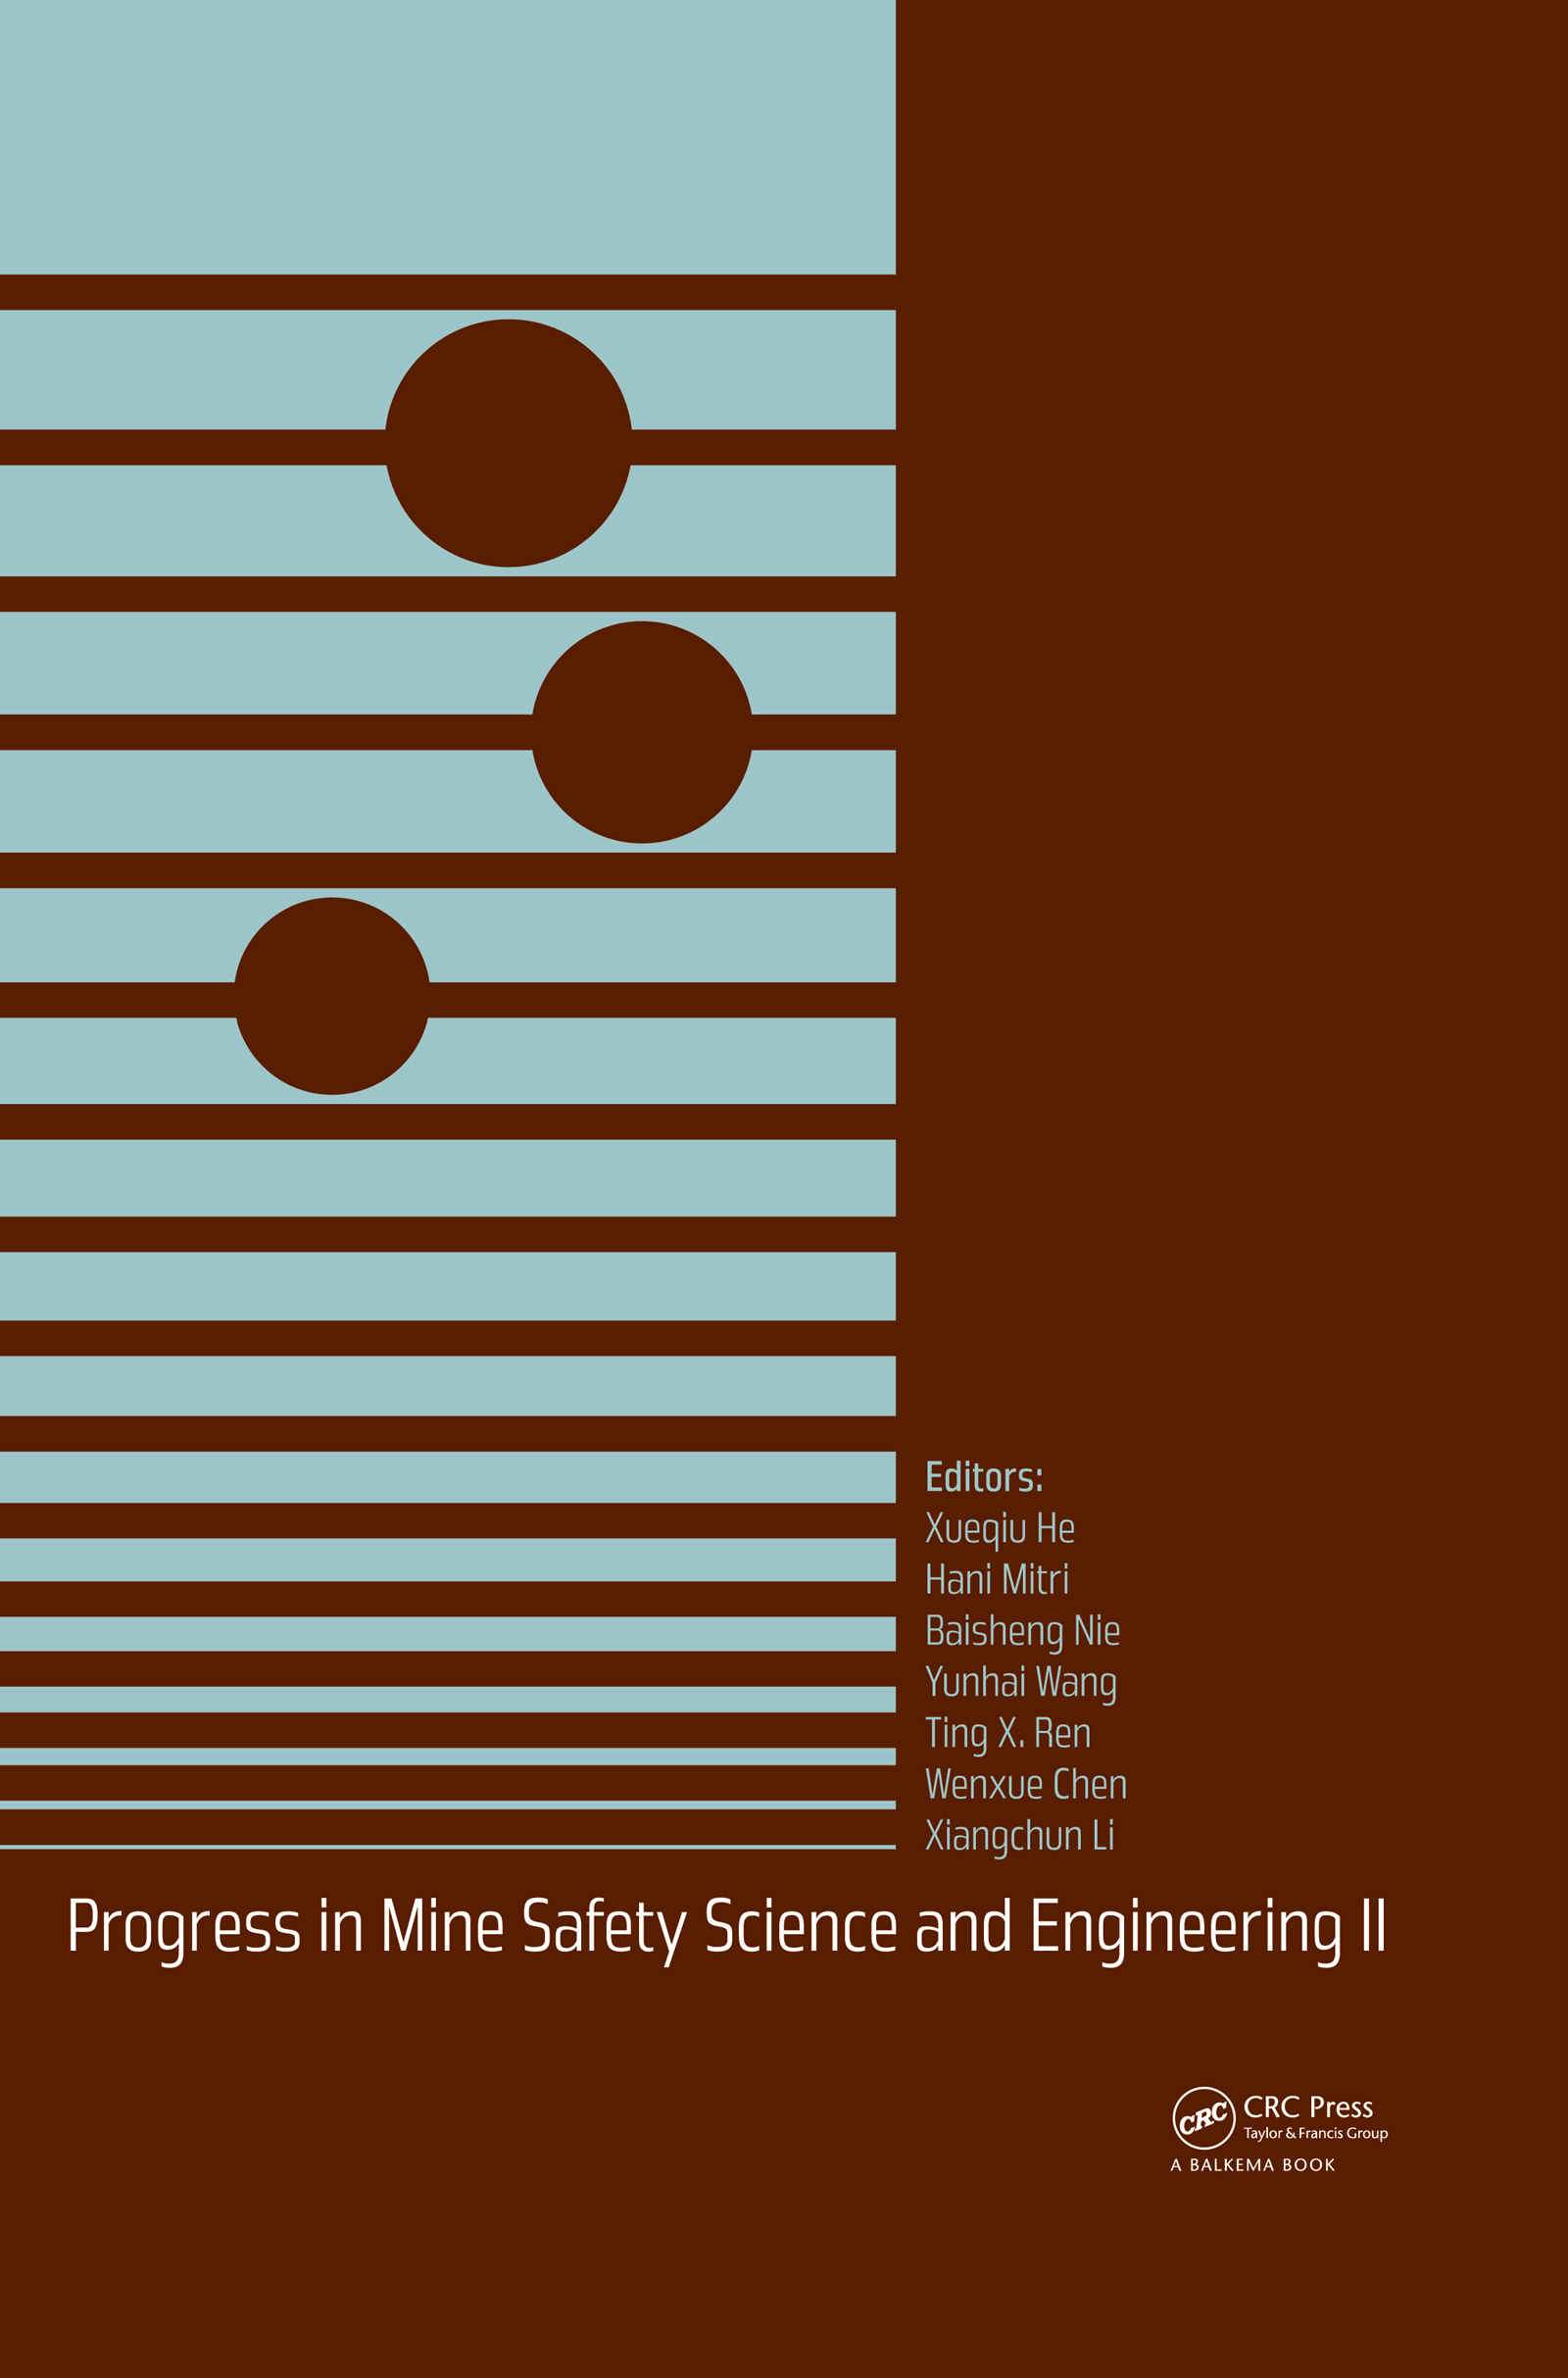 Progress in Mine Safety Science and Engineering II: 1st Edition (Pack - Book and CD) book cover